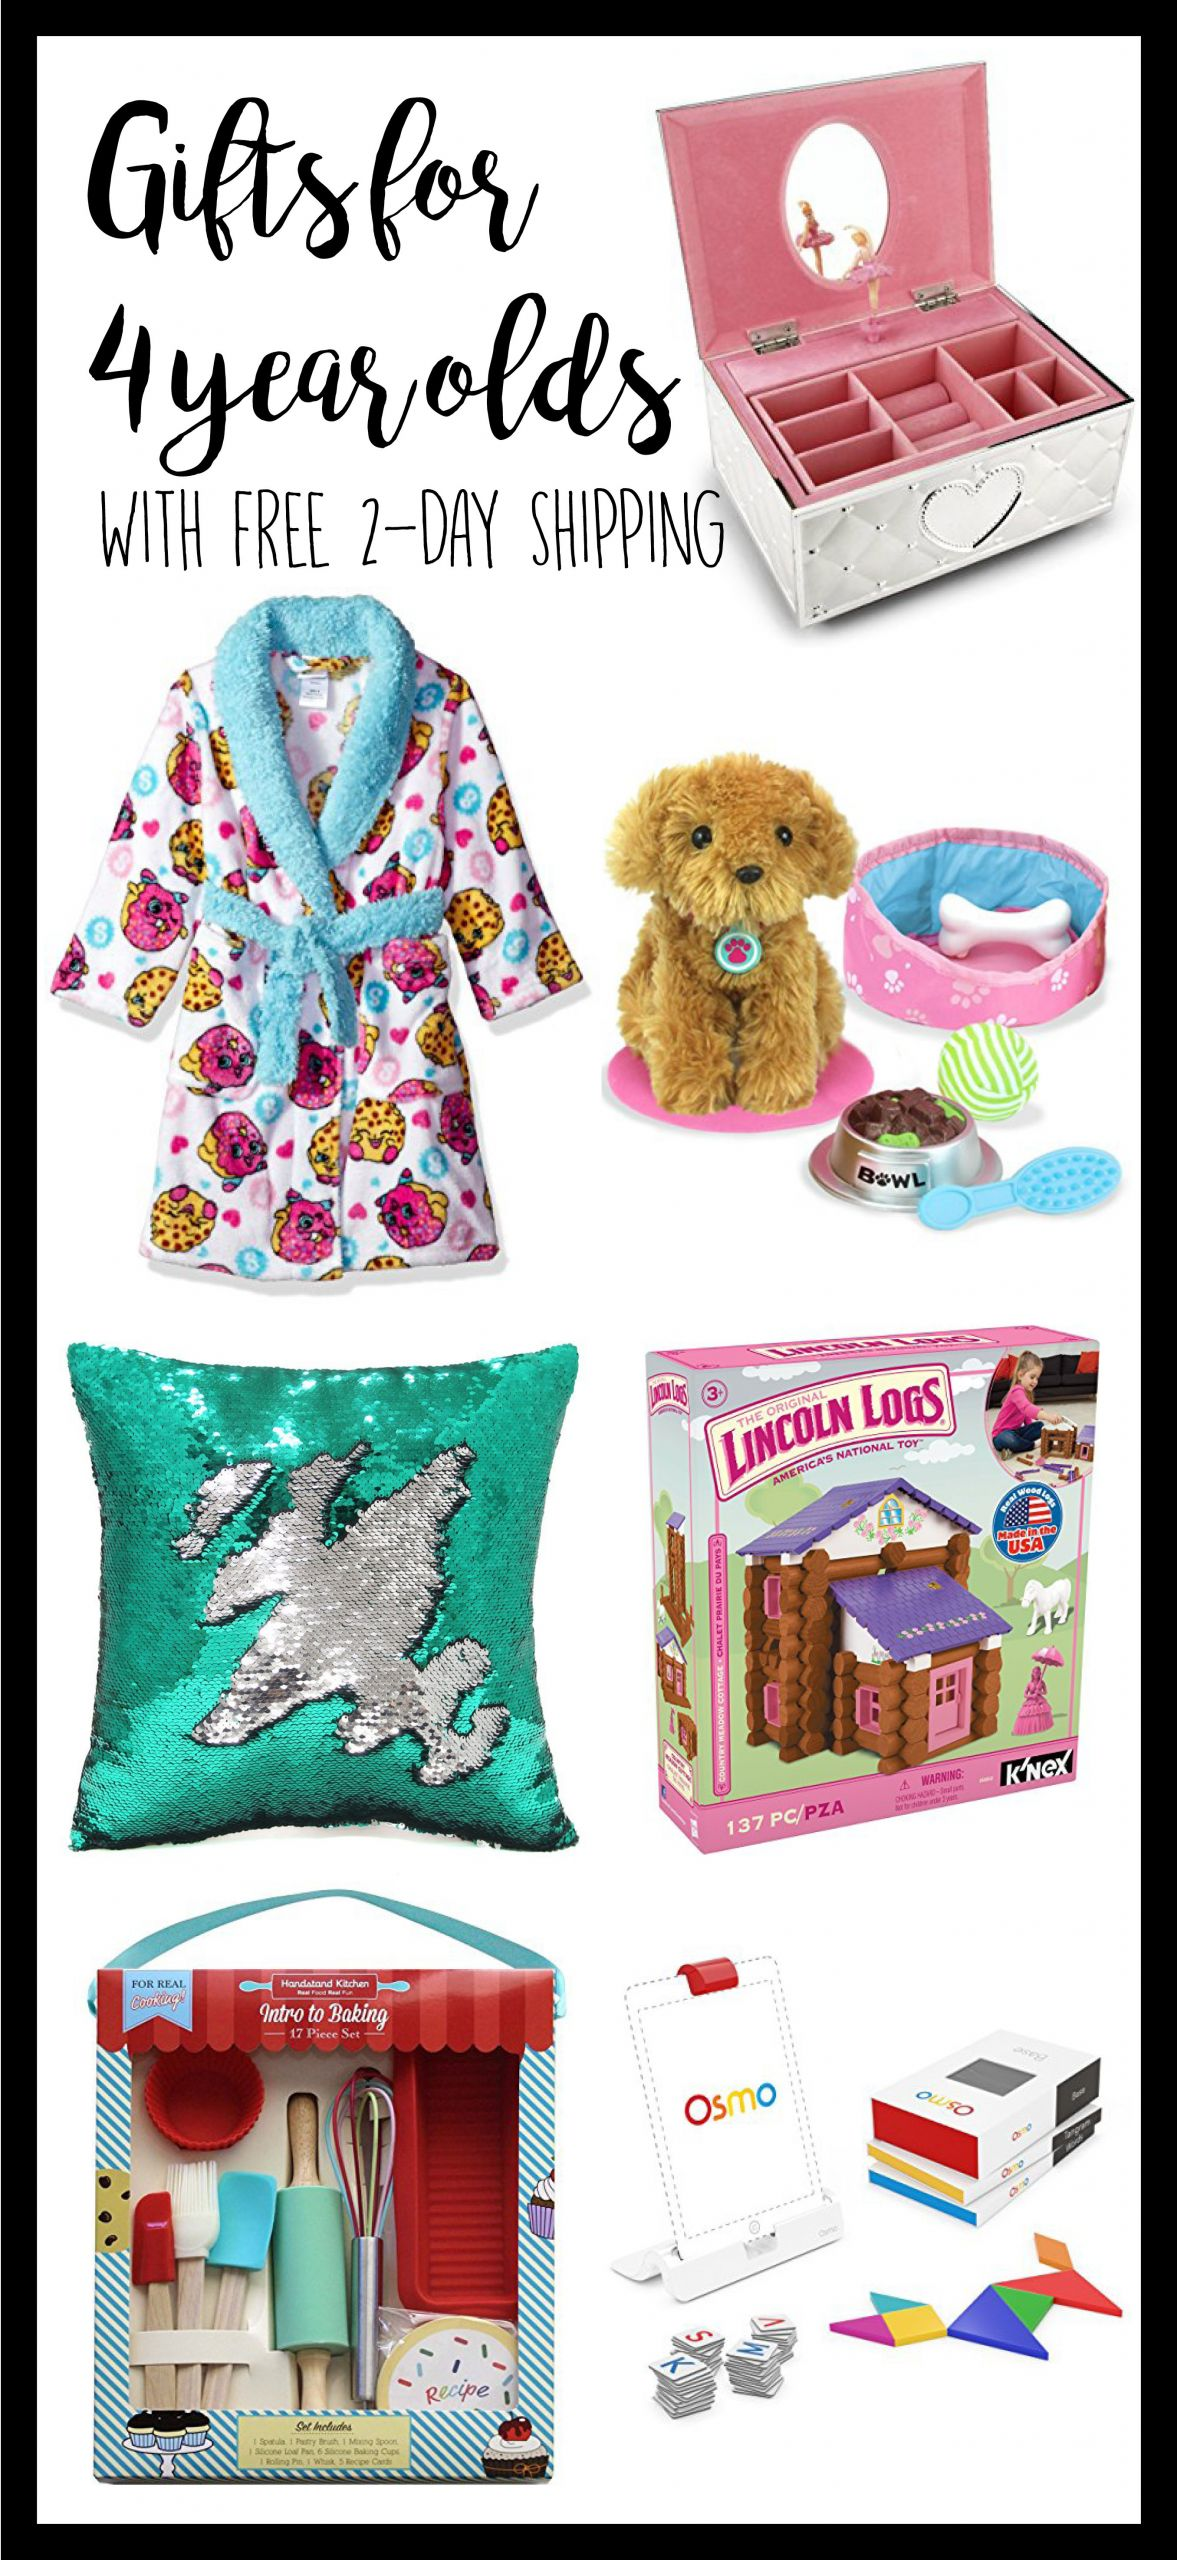 Gift Ideas For 4 Year Old Girls  4 Year Old Gift Ideas Gift ideas for 4 year old Girls